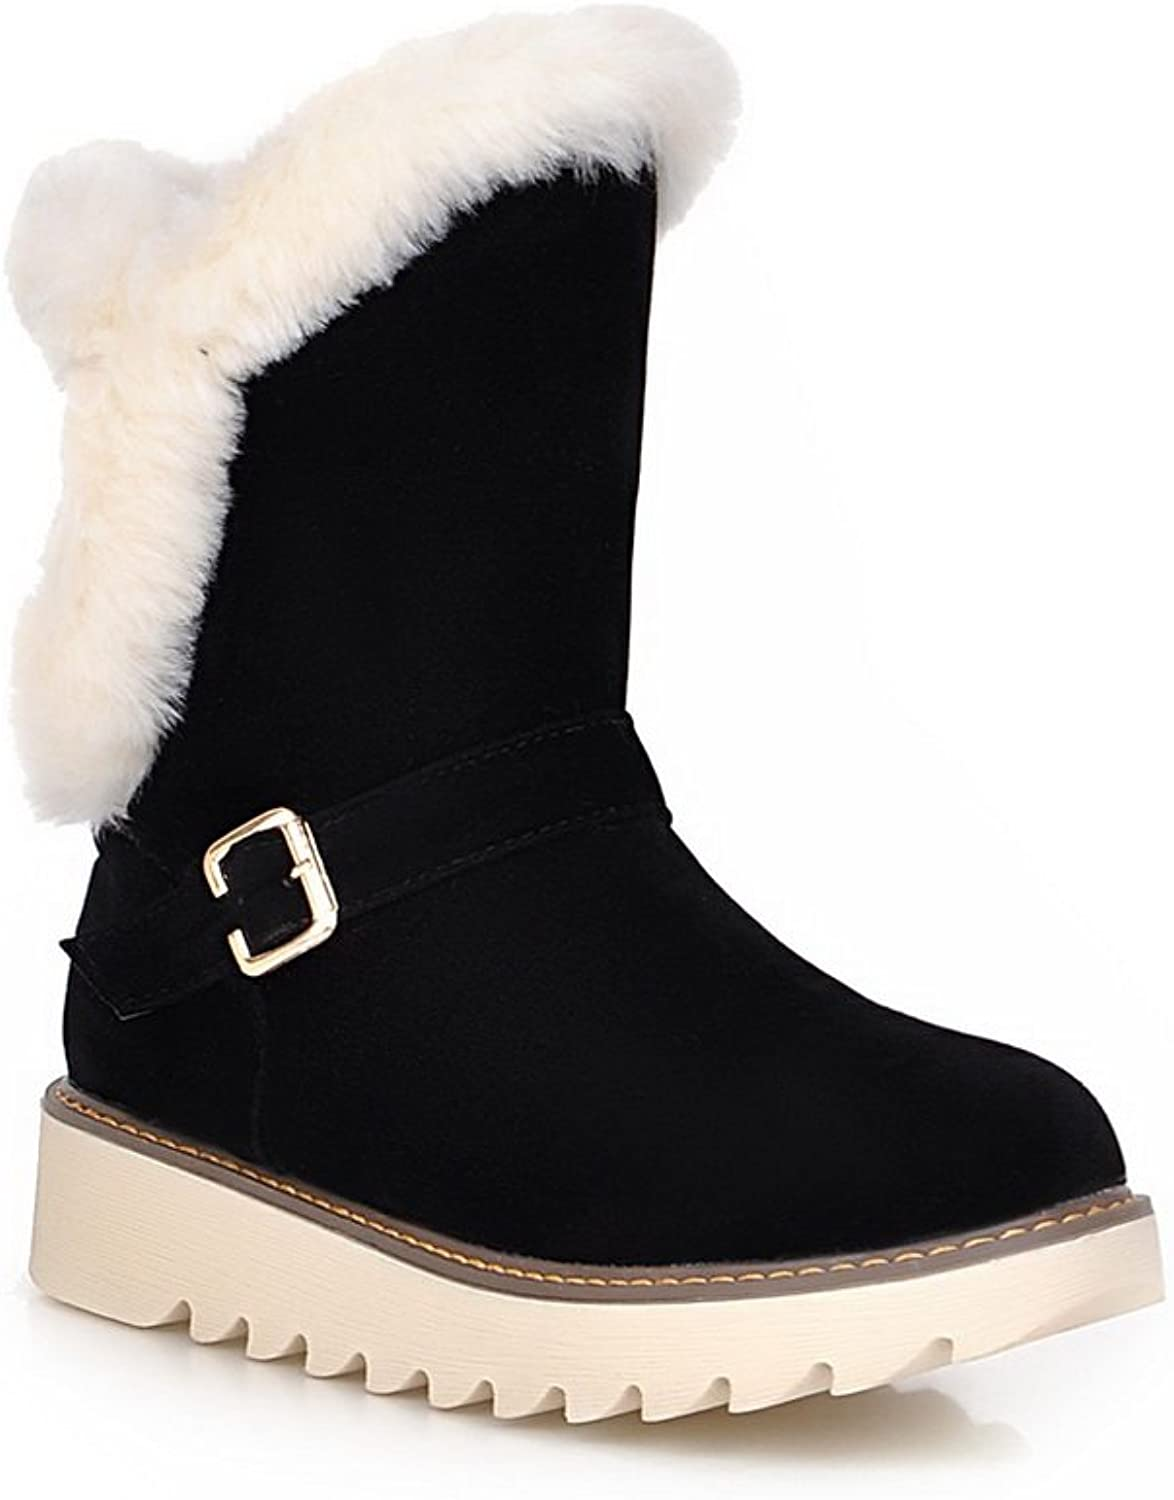 AdeeSu Ladies Platform Buckle Ornamented Round Toe Frosted Boots